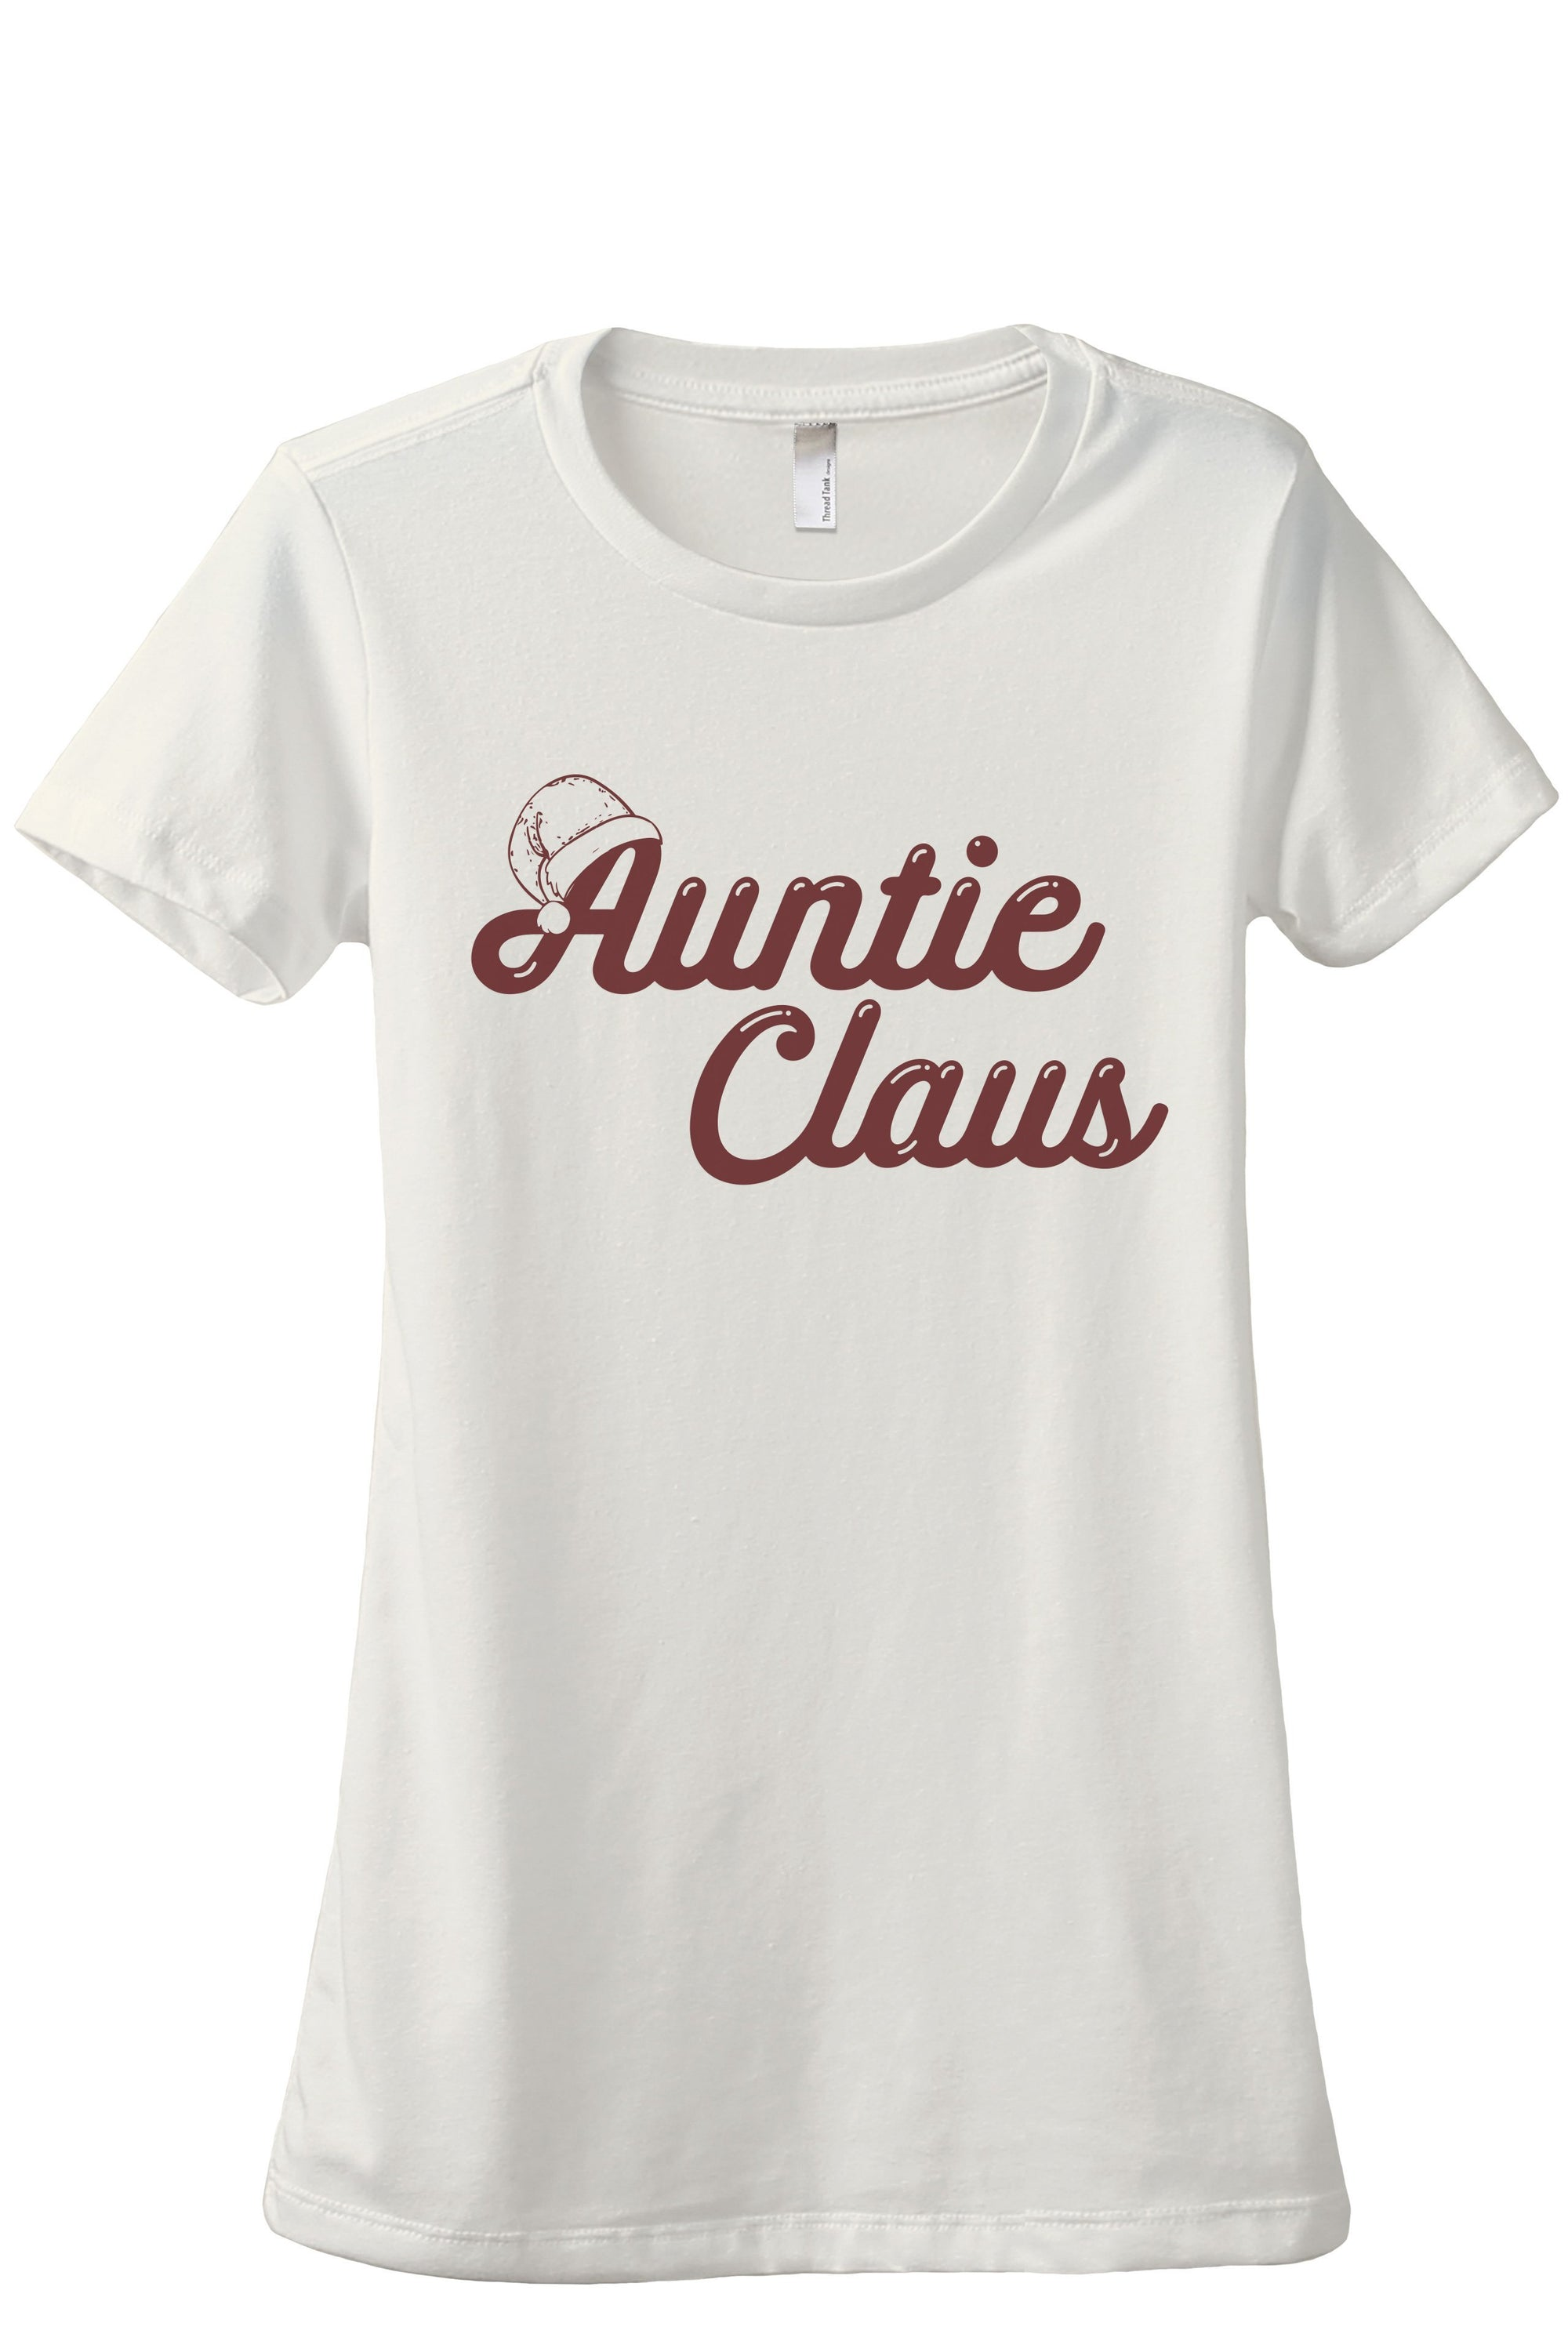 Auntie Claus Women's Relaxed Crewneck T-Shirt Top Tee Vintage White